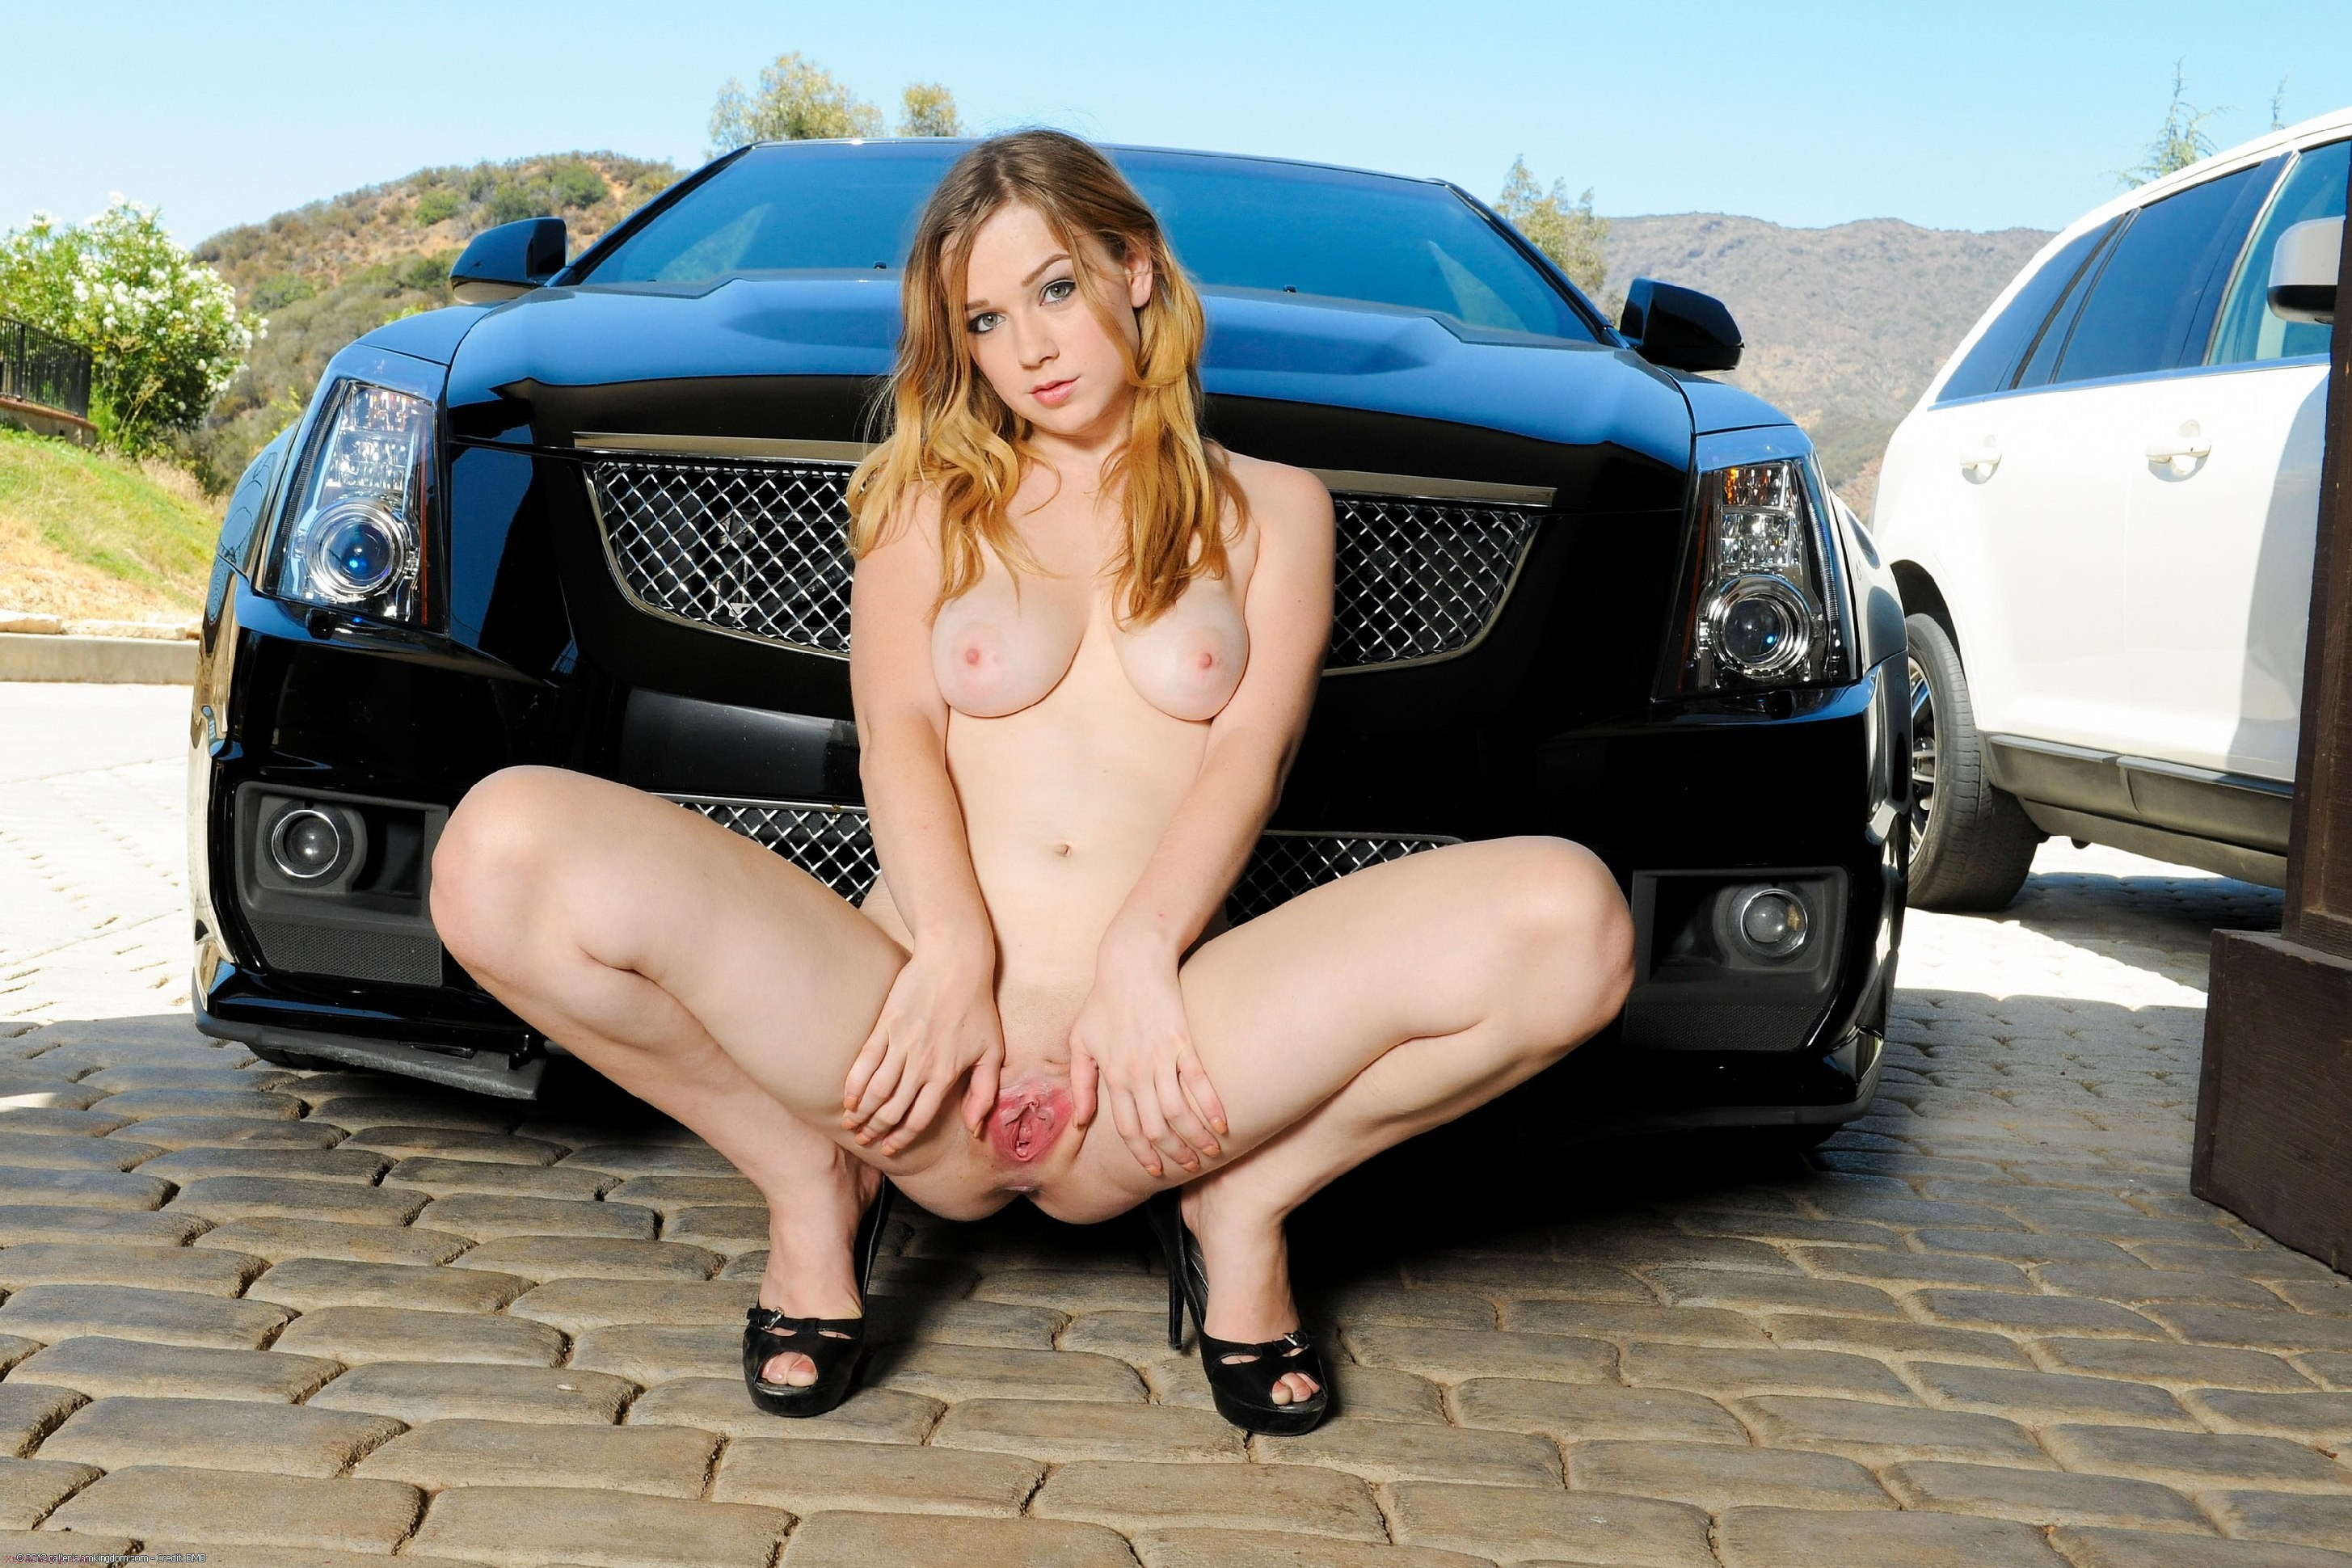 Helpful cars and nude babes